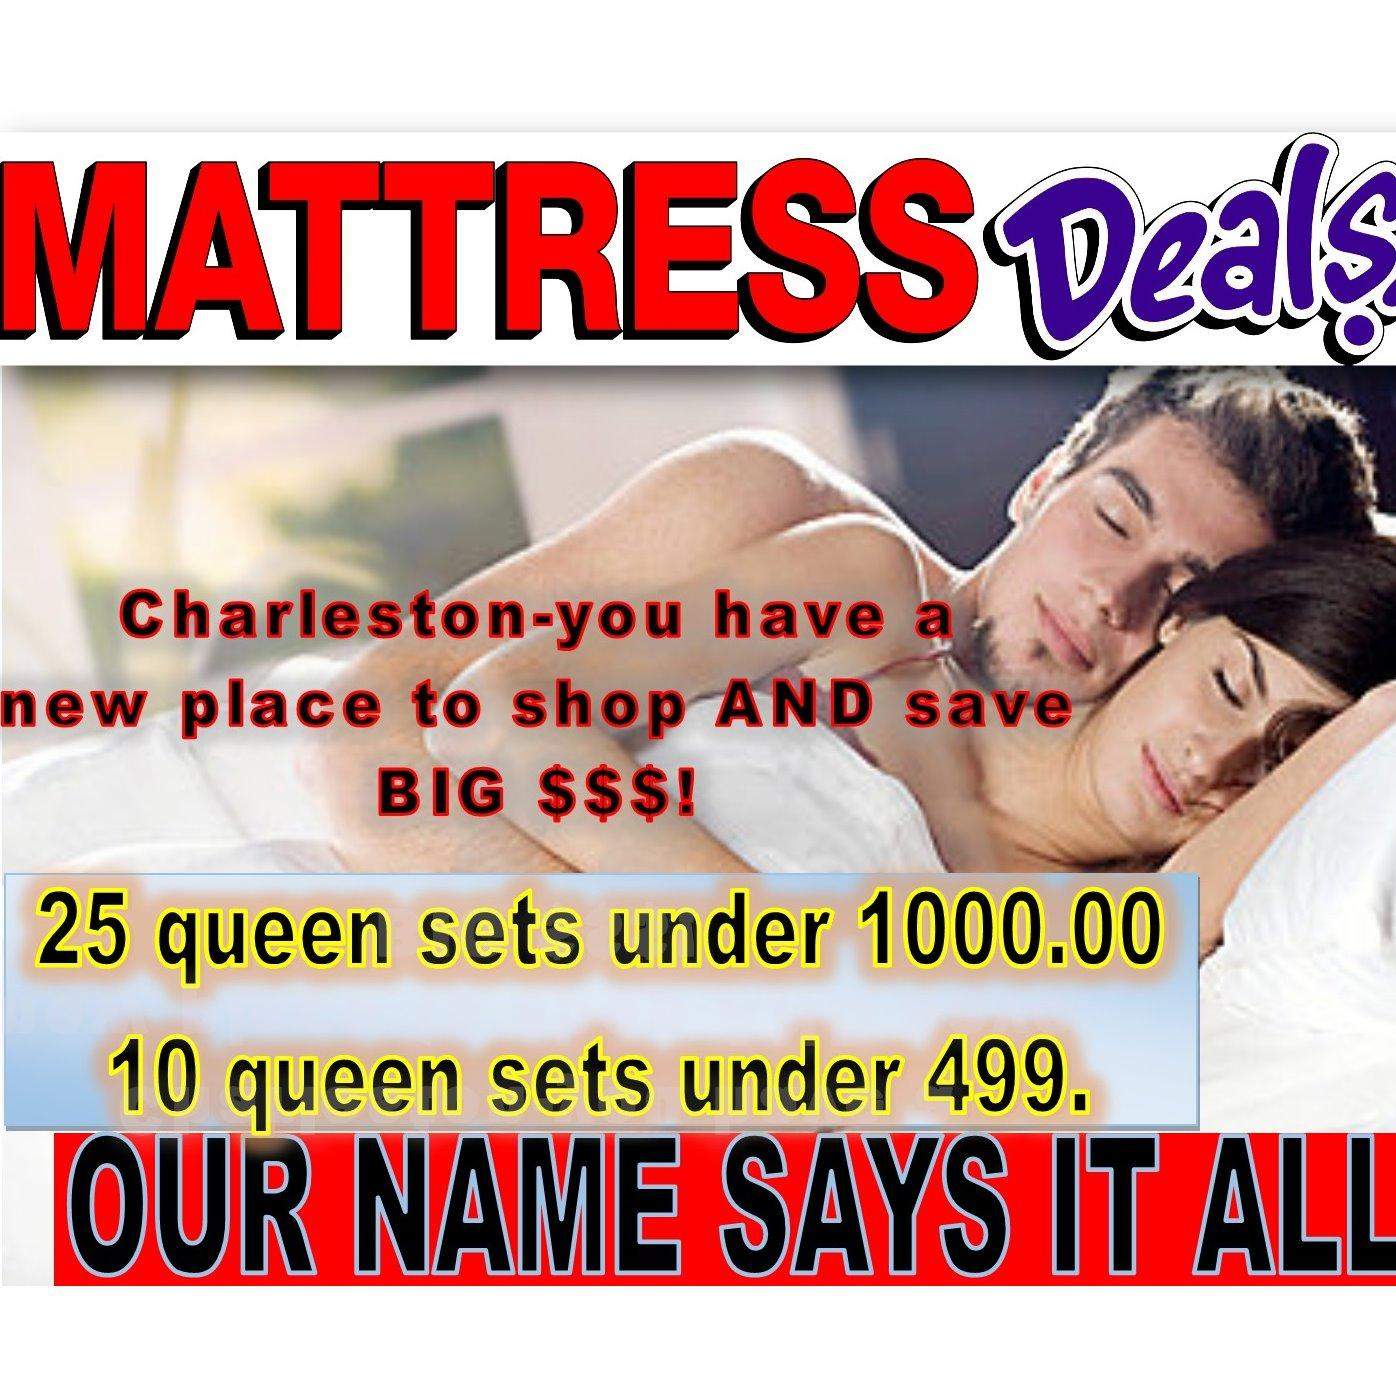 Mattress Deals image 98